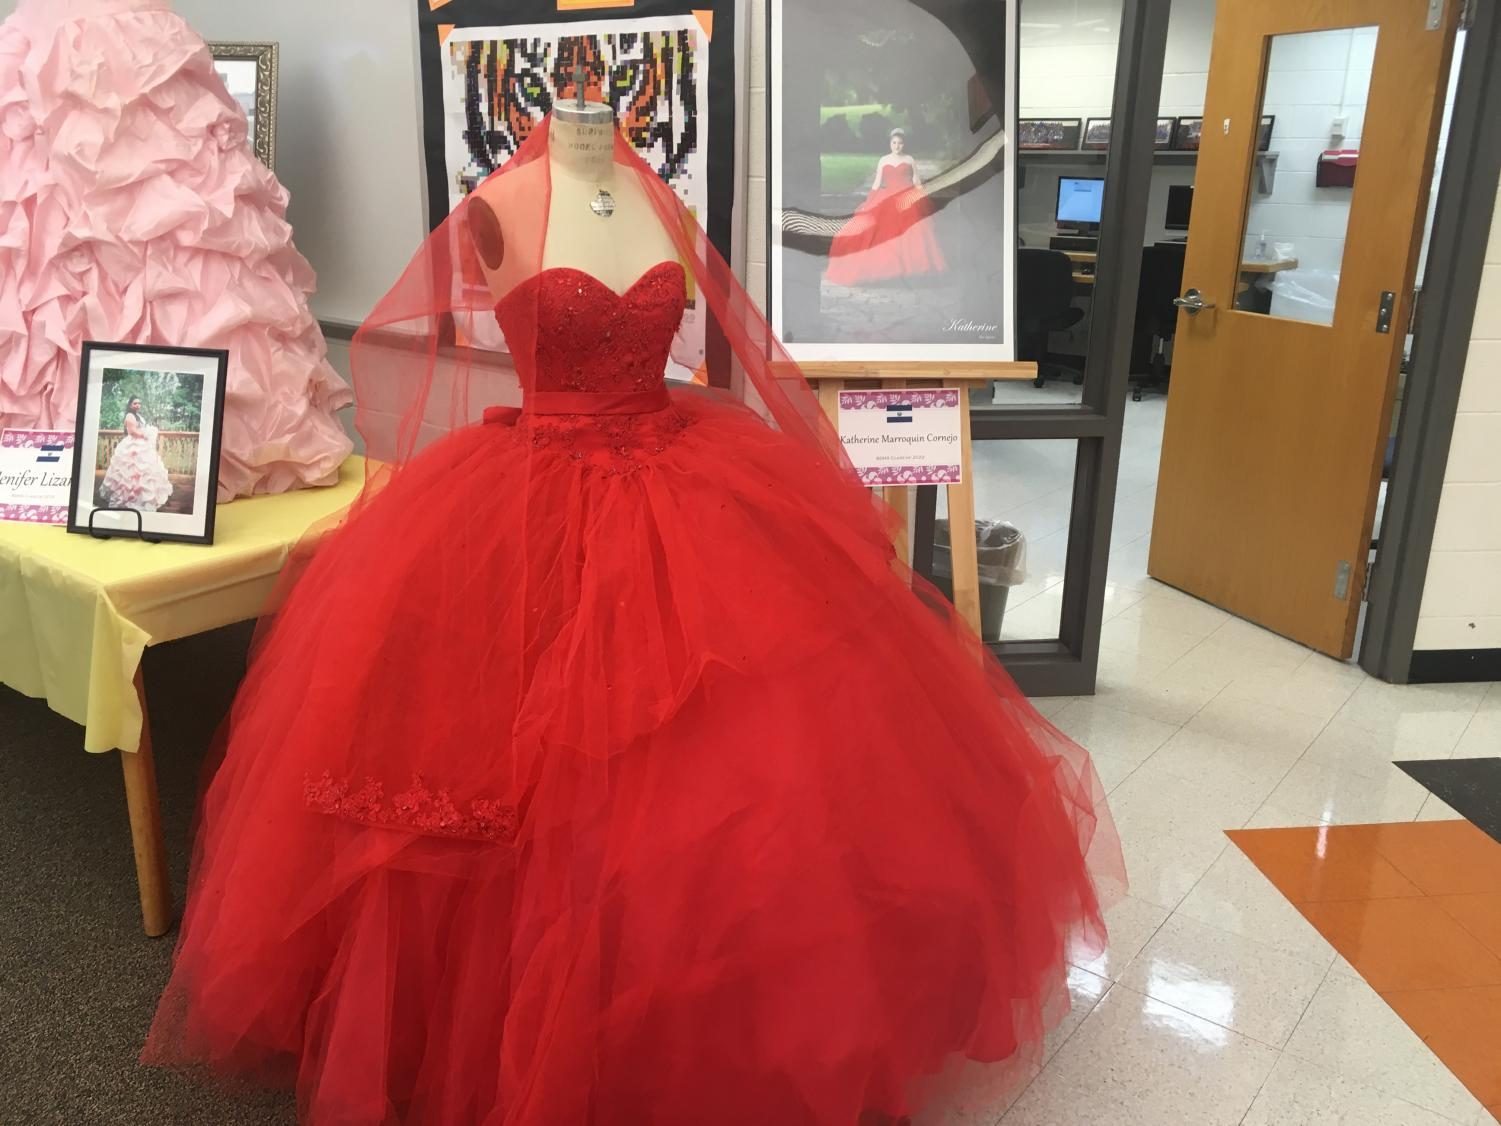 Katherine Marroquin's Quinceanera dress, in the library on display